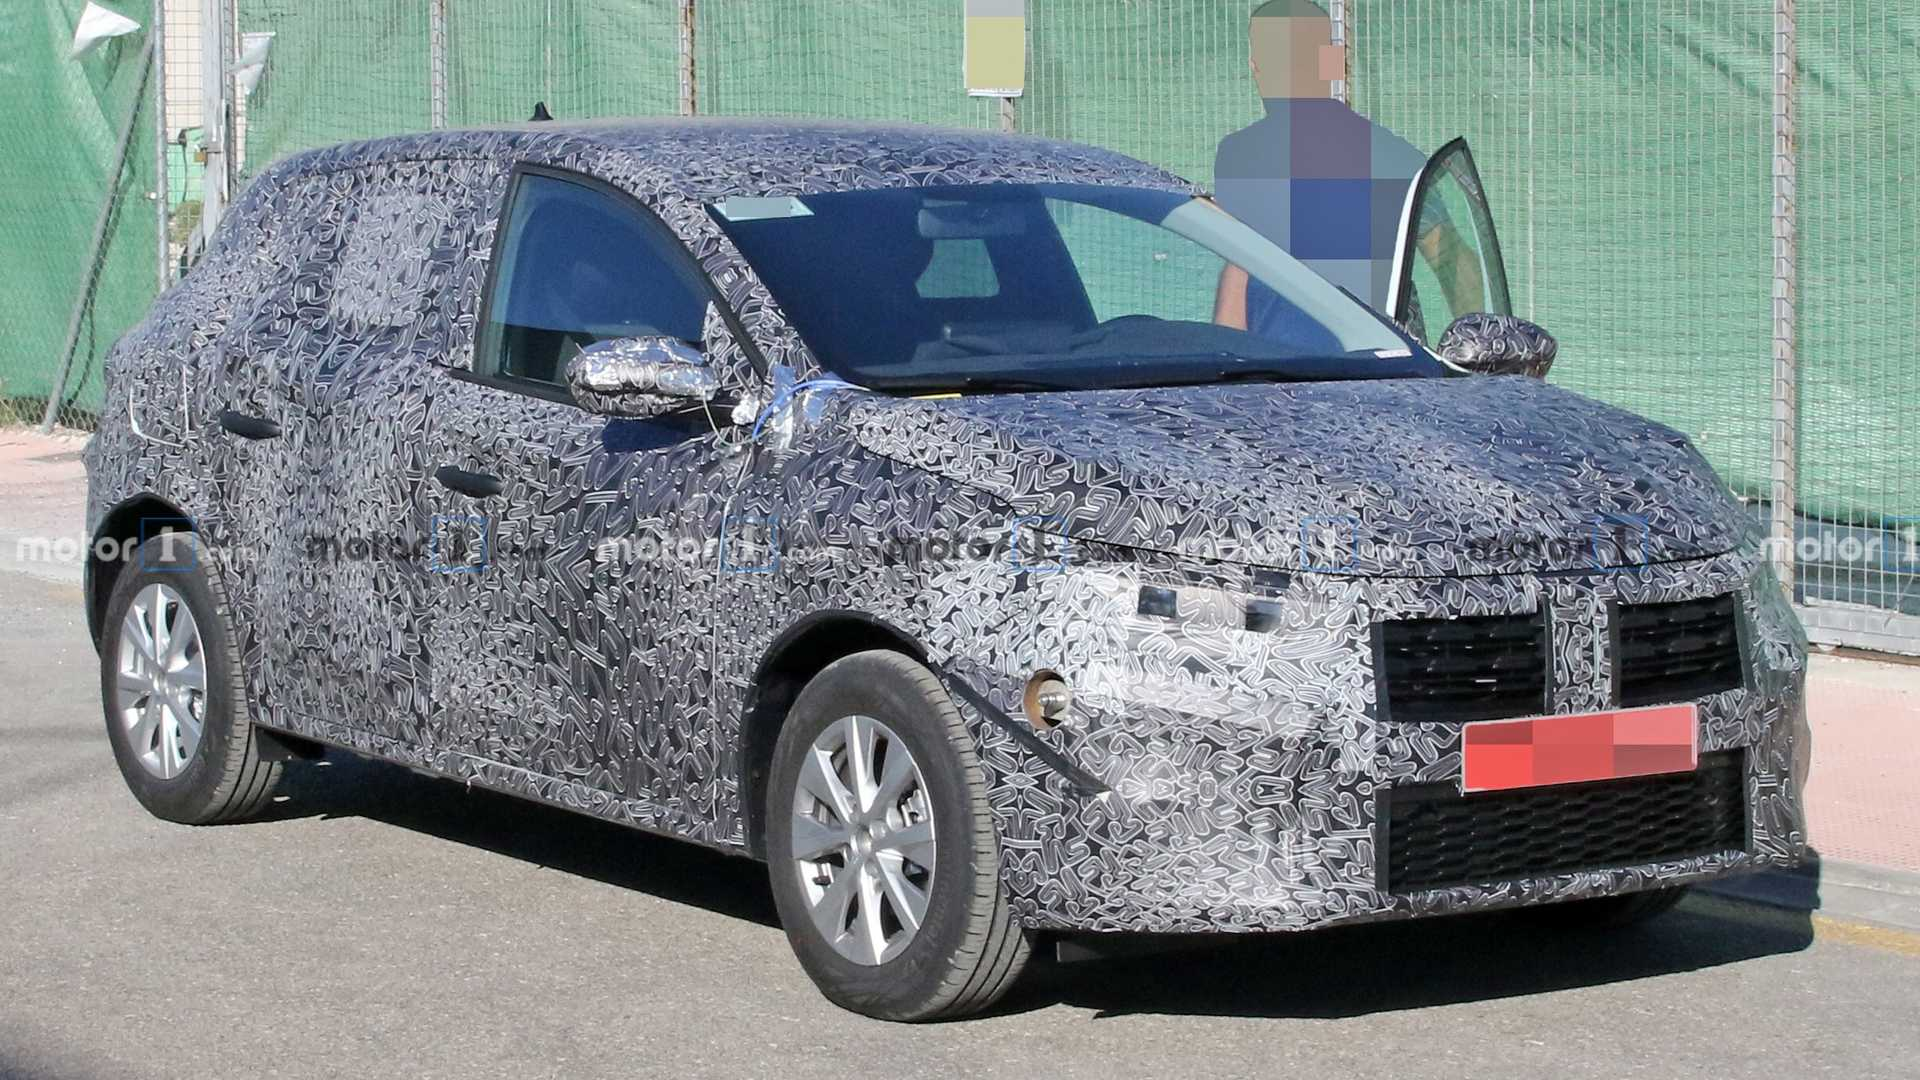 All-New Dacia Sandero Spied For The First Time